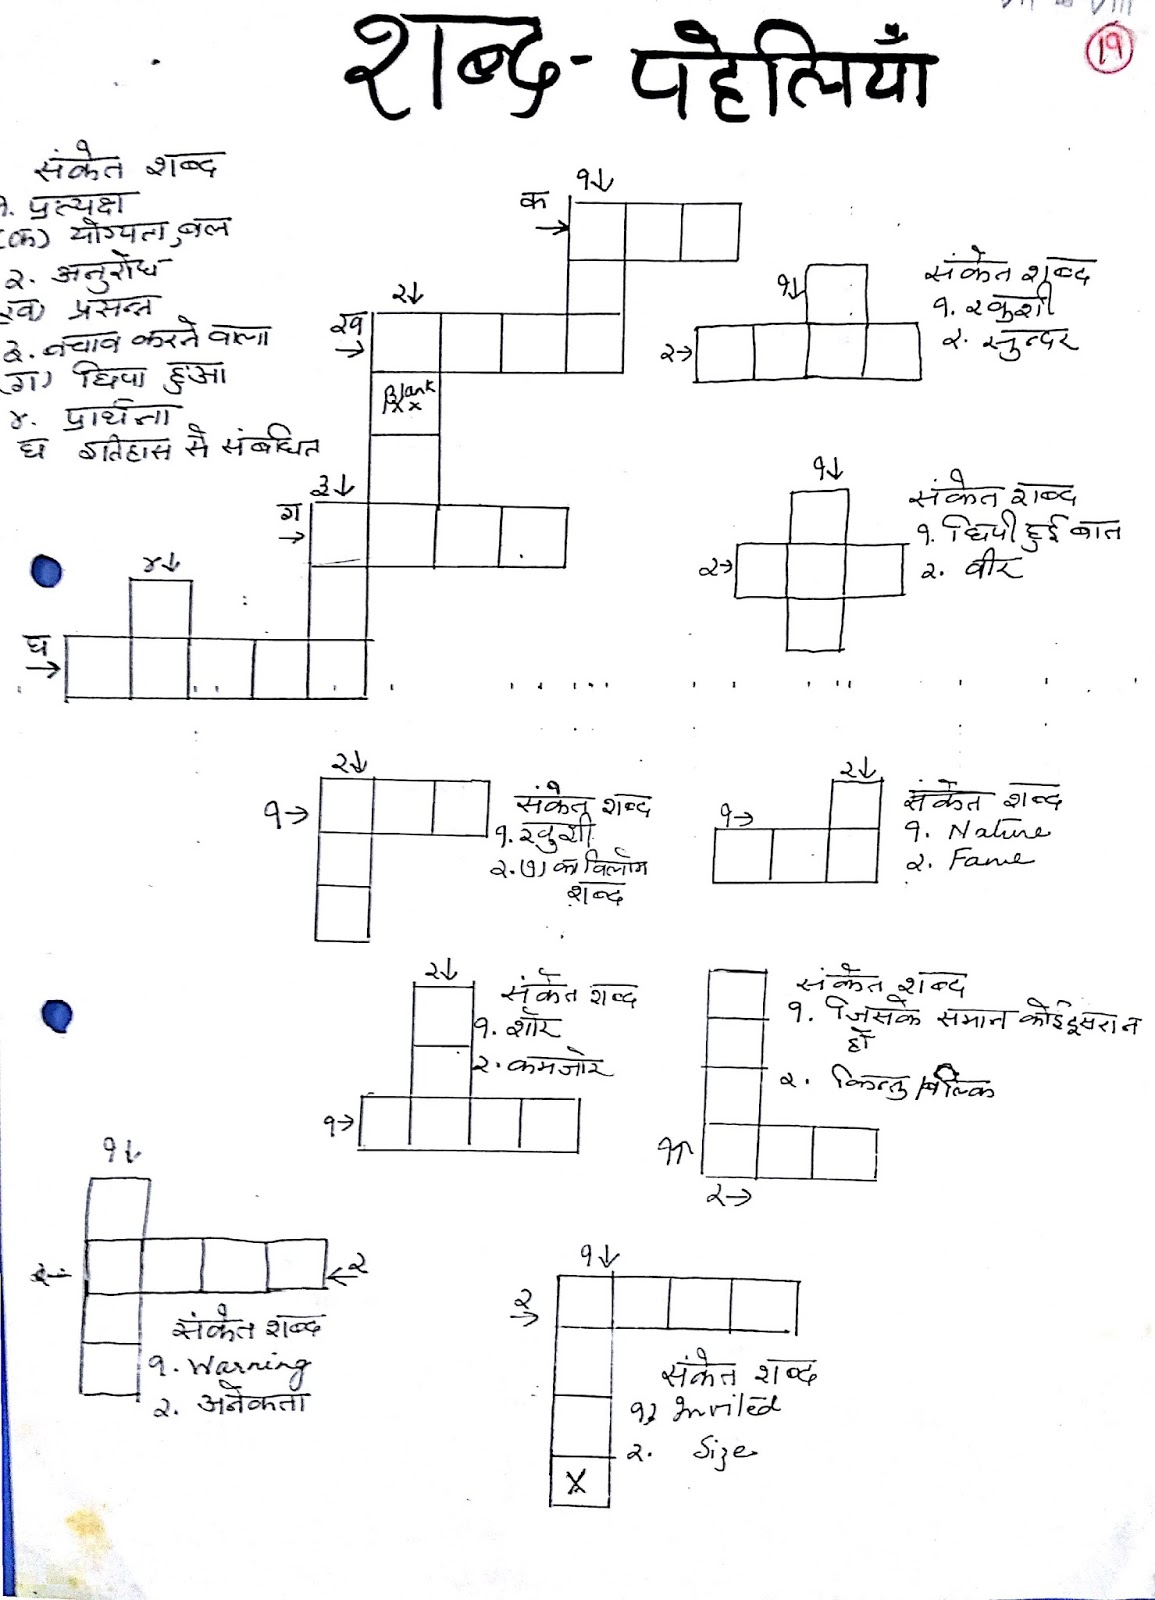 Hindi ka ras lo november 2016 collection of cross words varg paheli from different sources with solution ccuart Choice Image